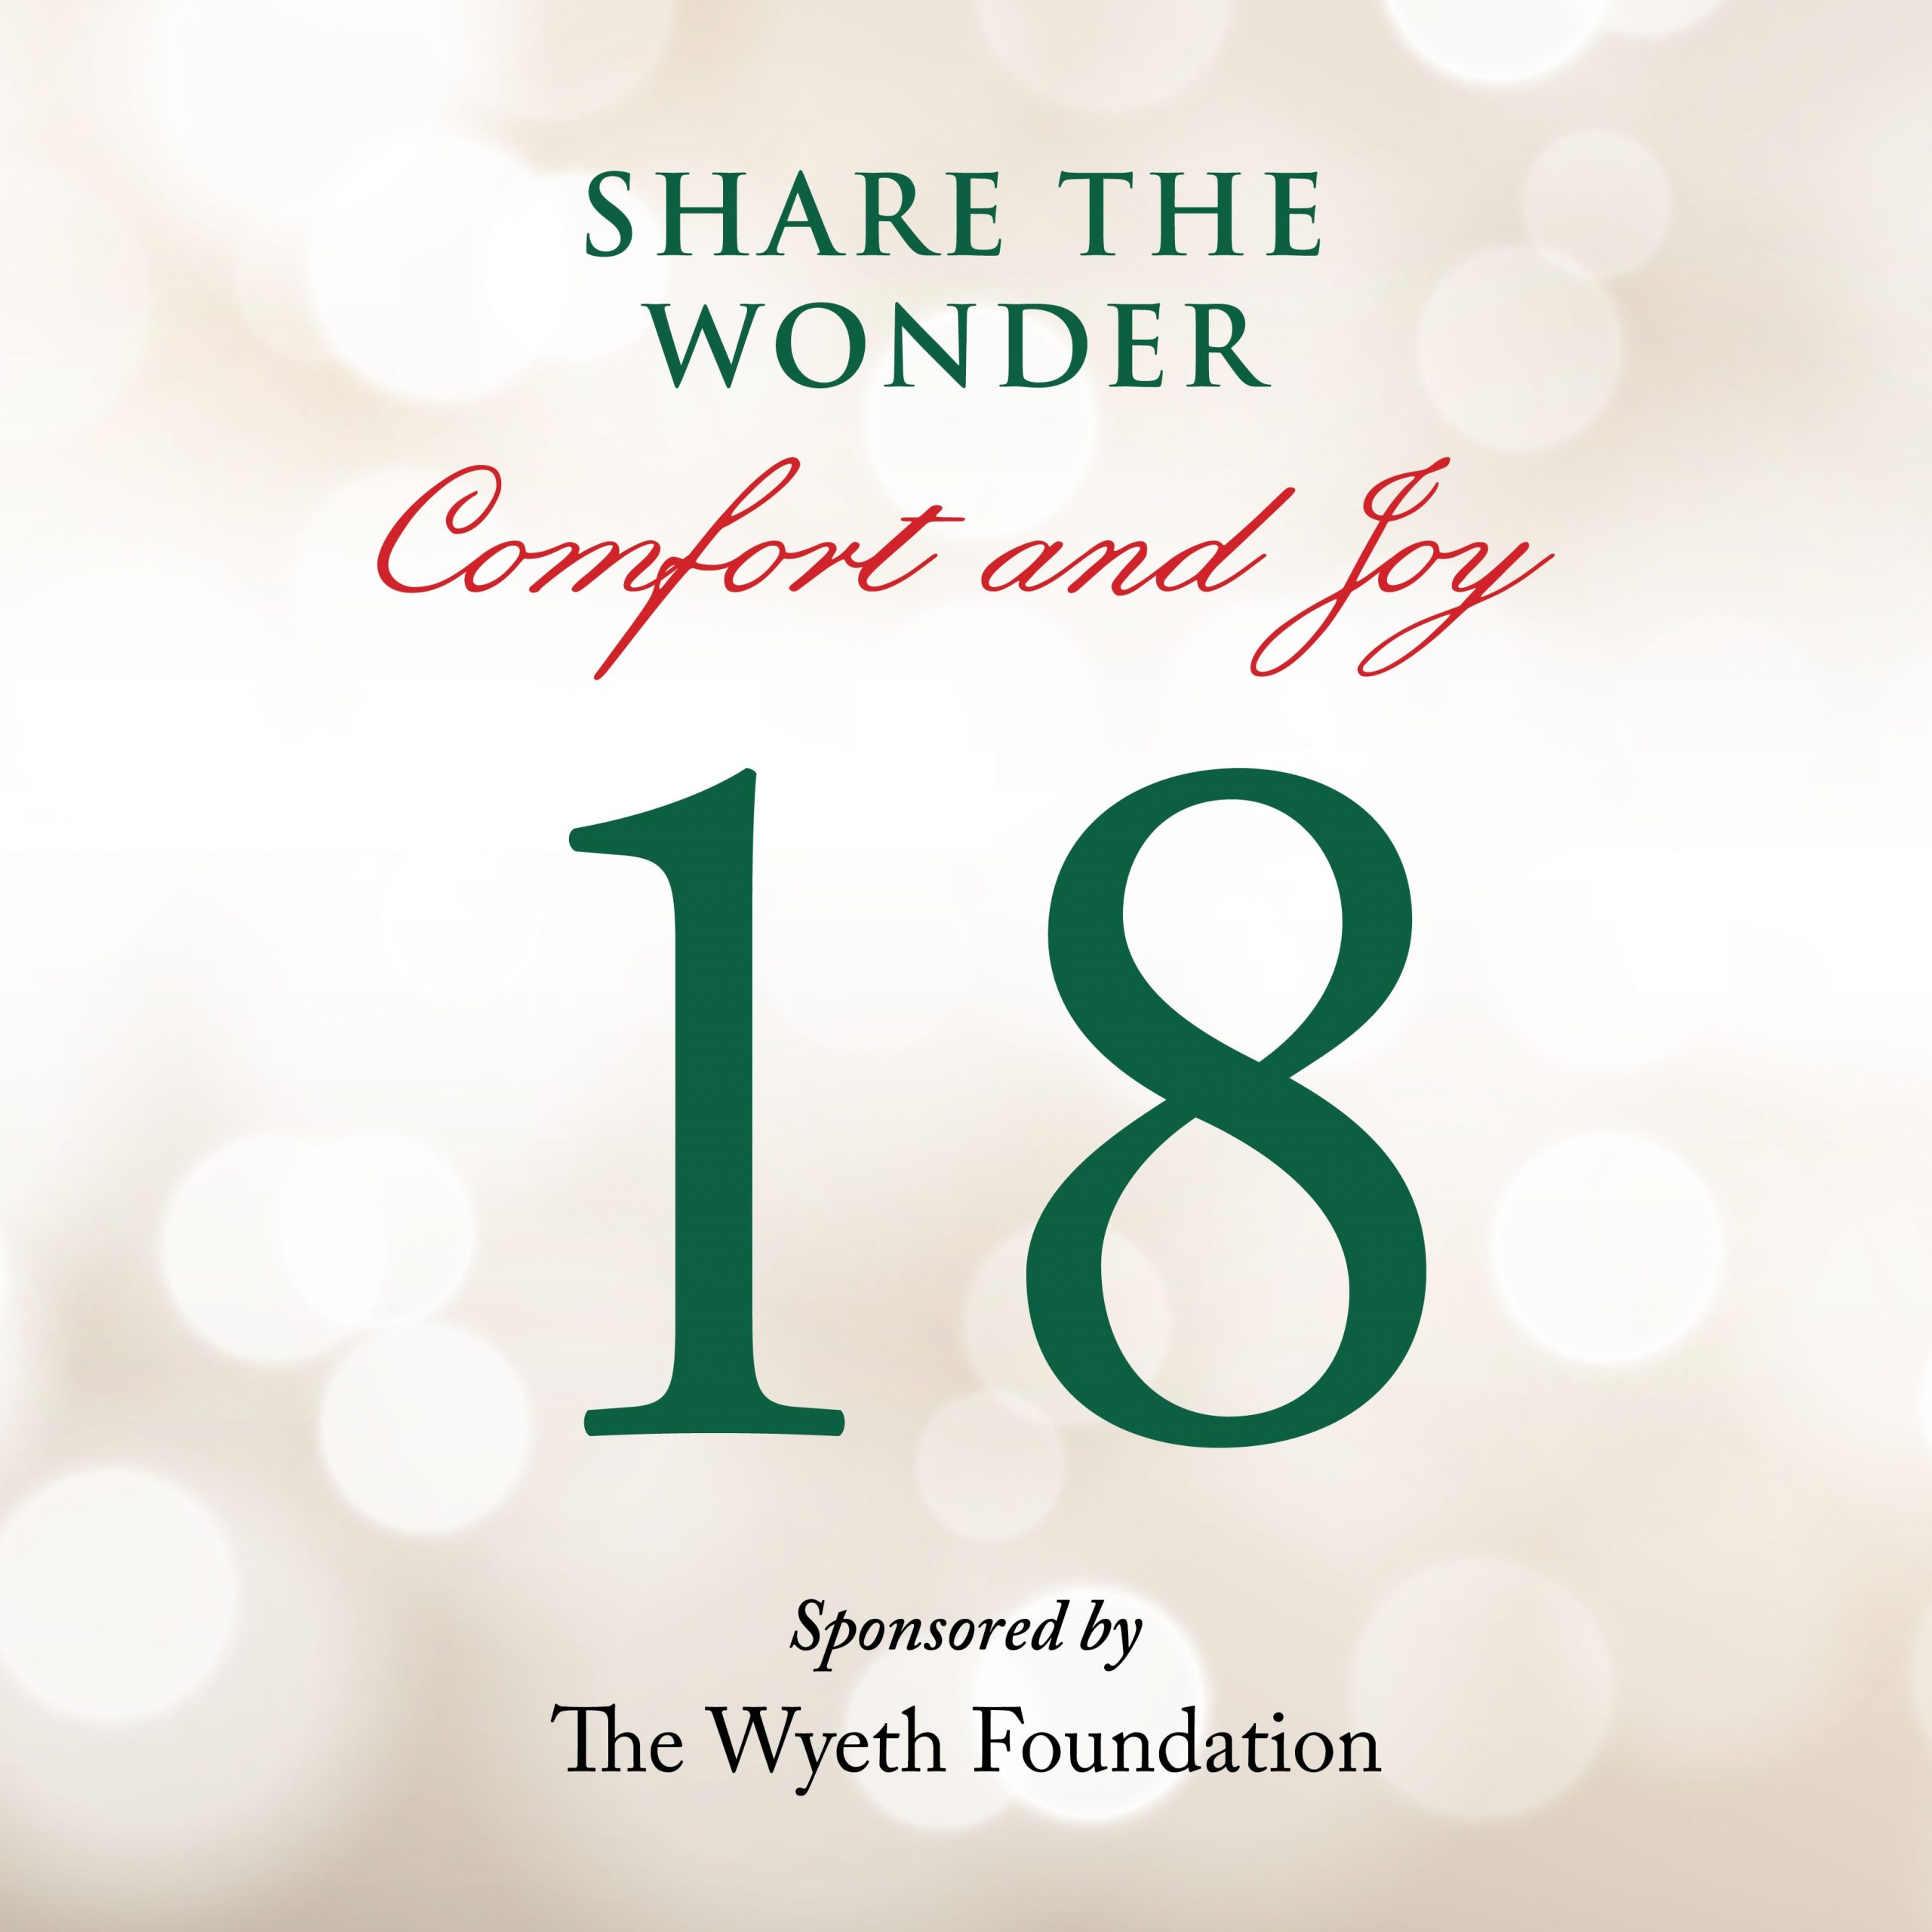 Day 18 of Share the Wonder: December 15